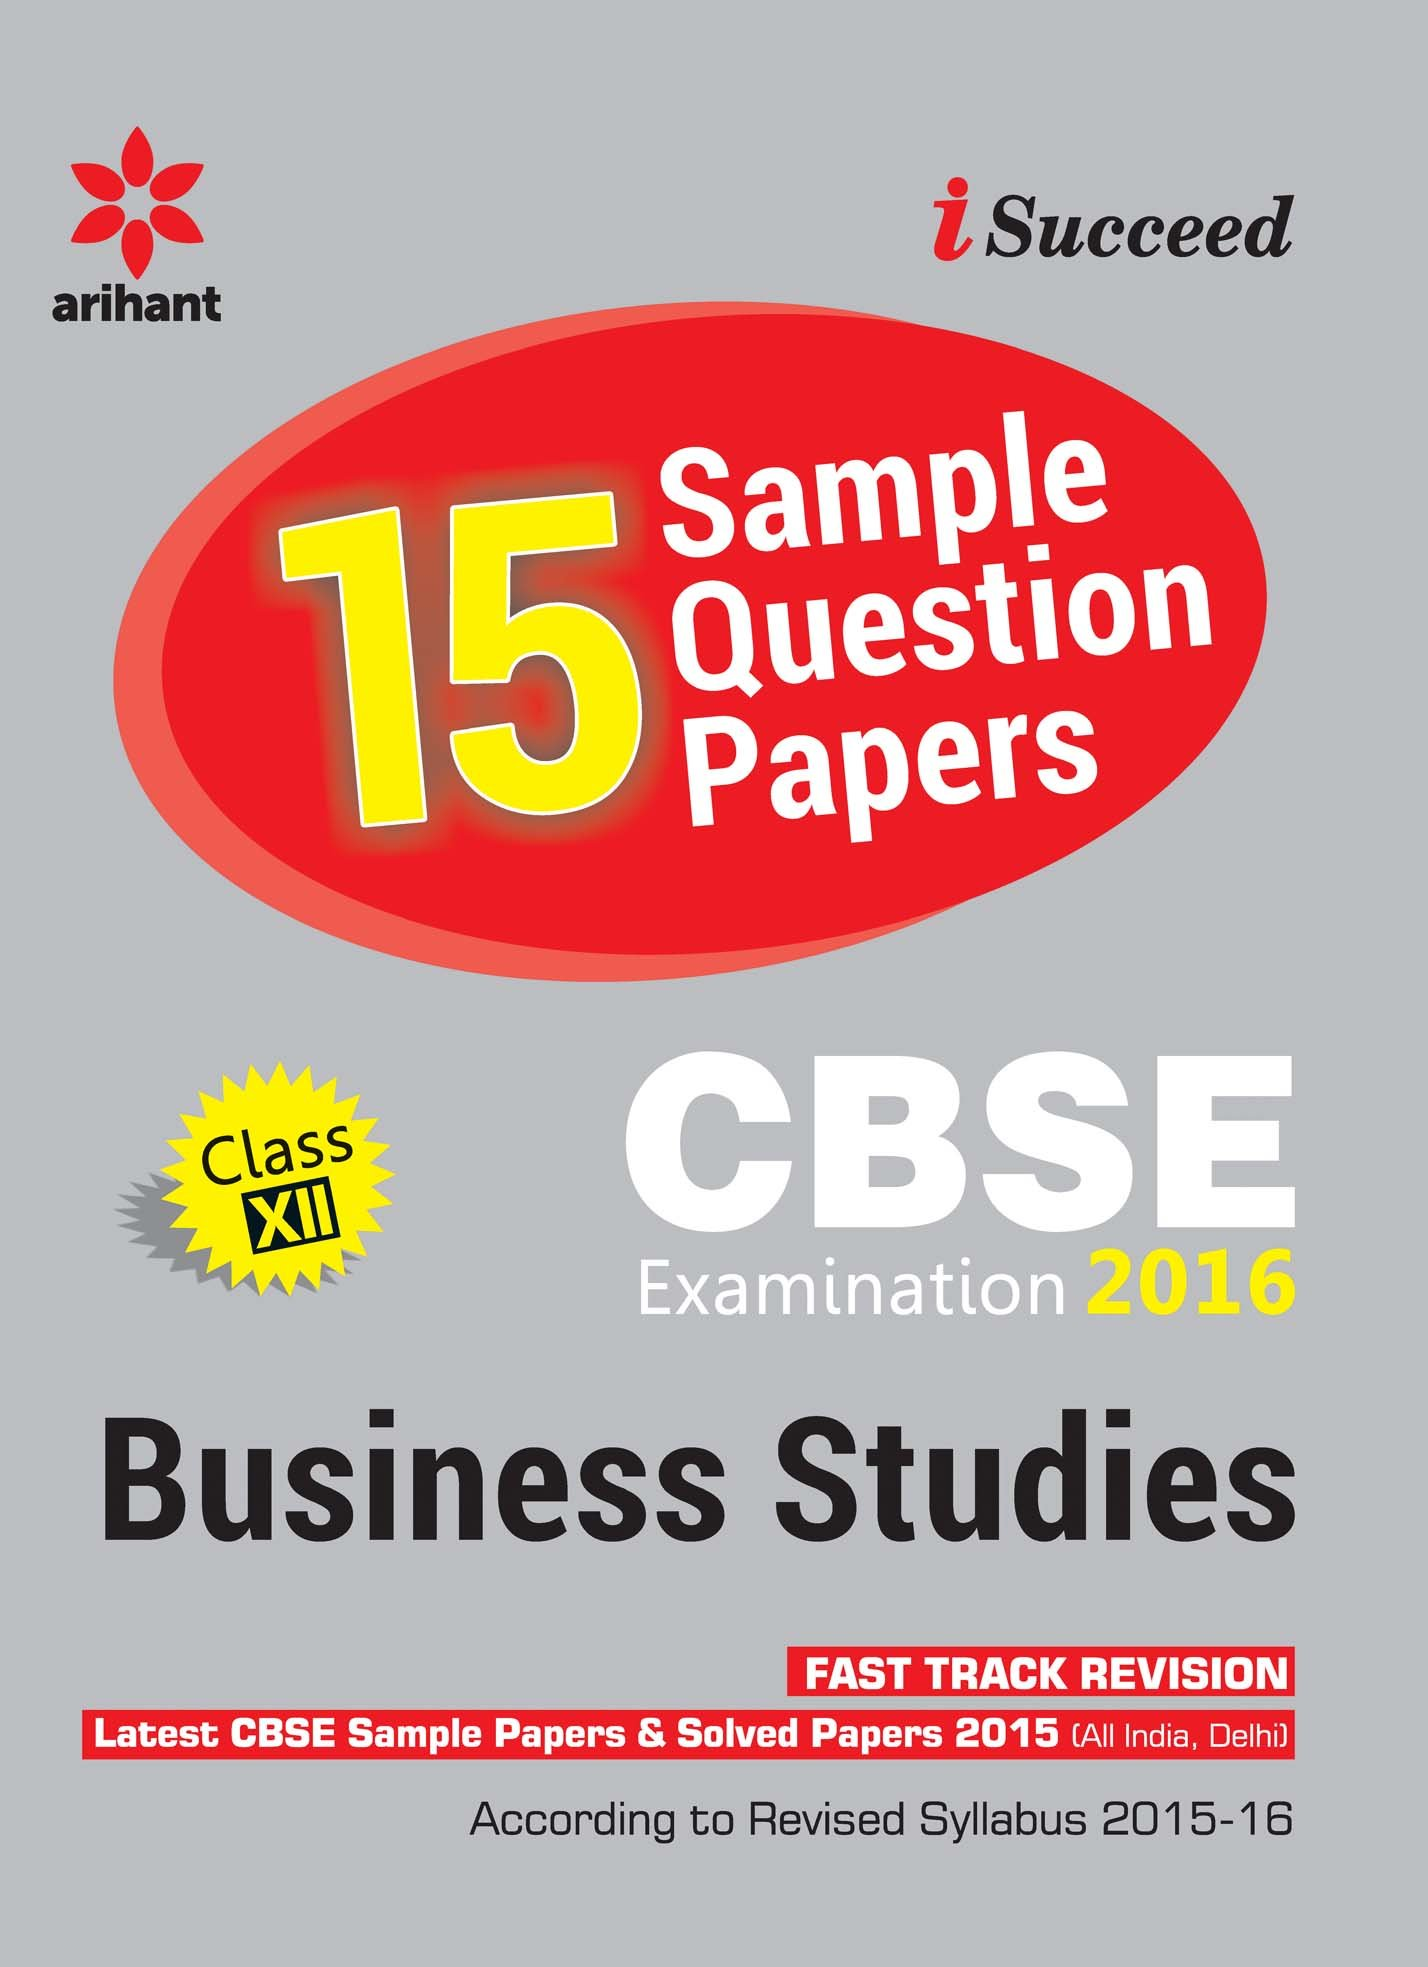 cbse sample paper business studies for class th old edition  cbse 15 sample paper business studies for class 12th old edition amazon in akanksha sharma books